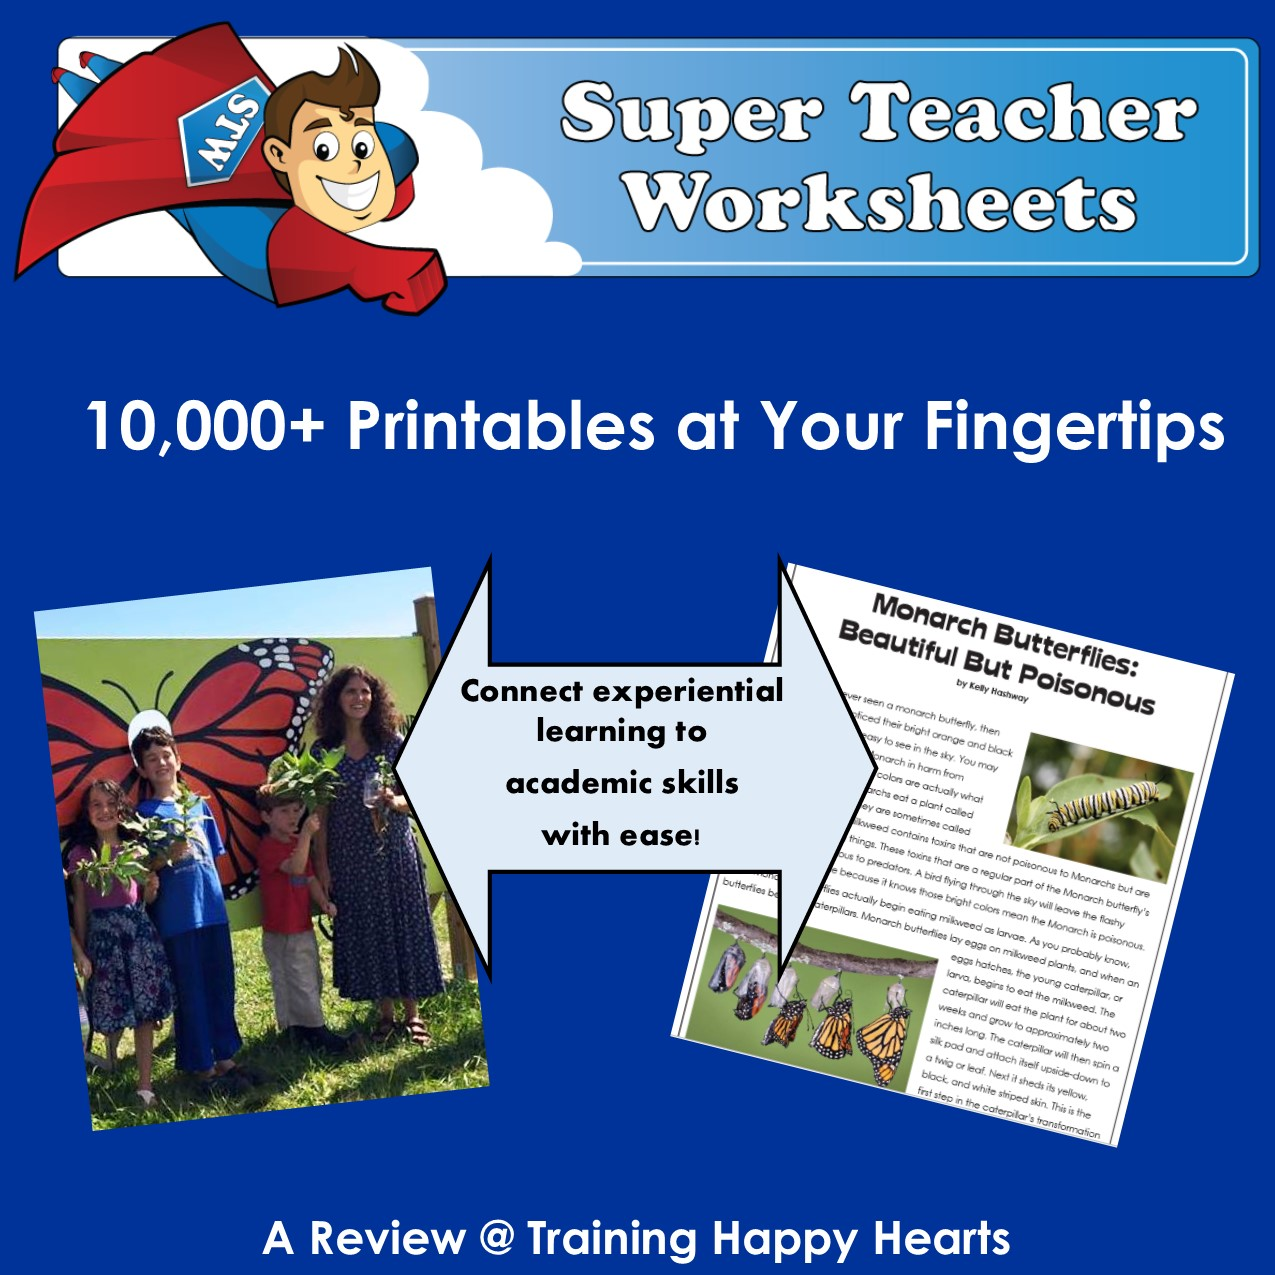 Printables Super Teacher Worksheets Login super teacher worksheets login and password fireyourmentor free username 2014 smart wiki today 2